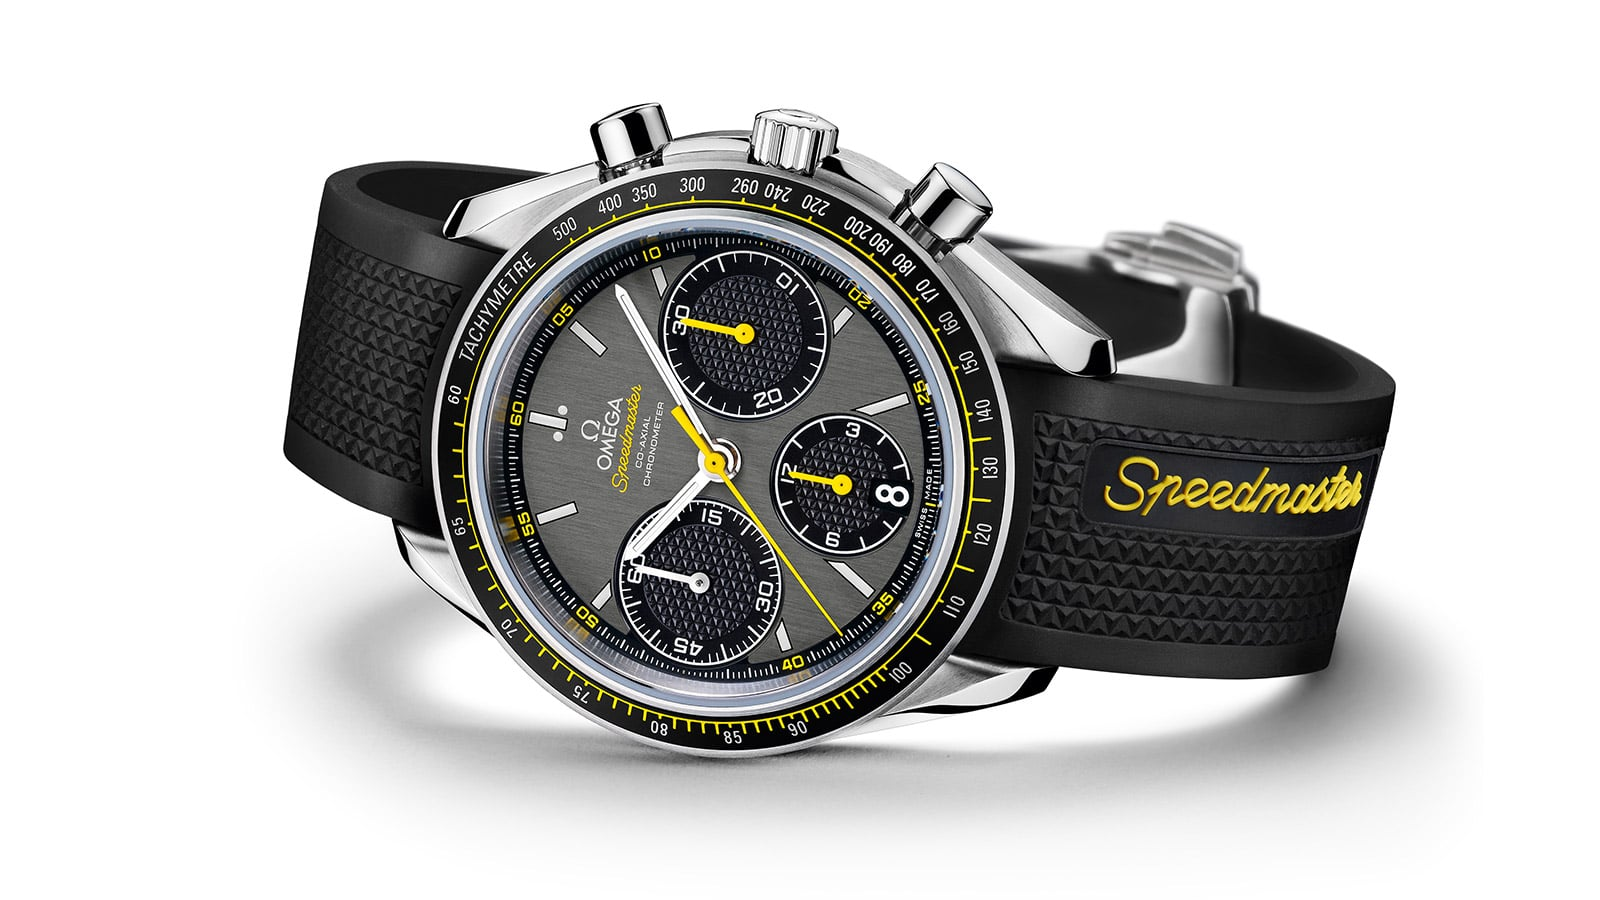 THE OMEGA SPEEDMASTER RACING